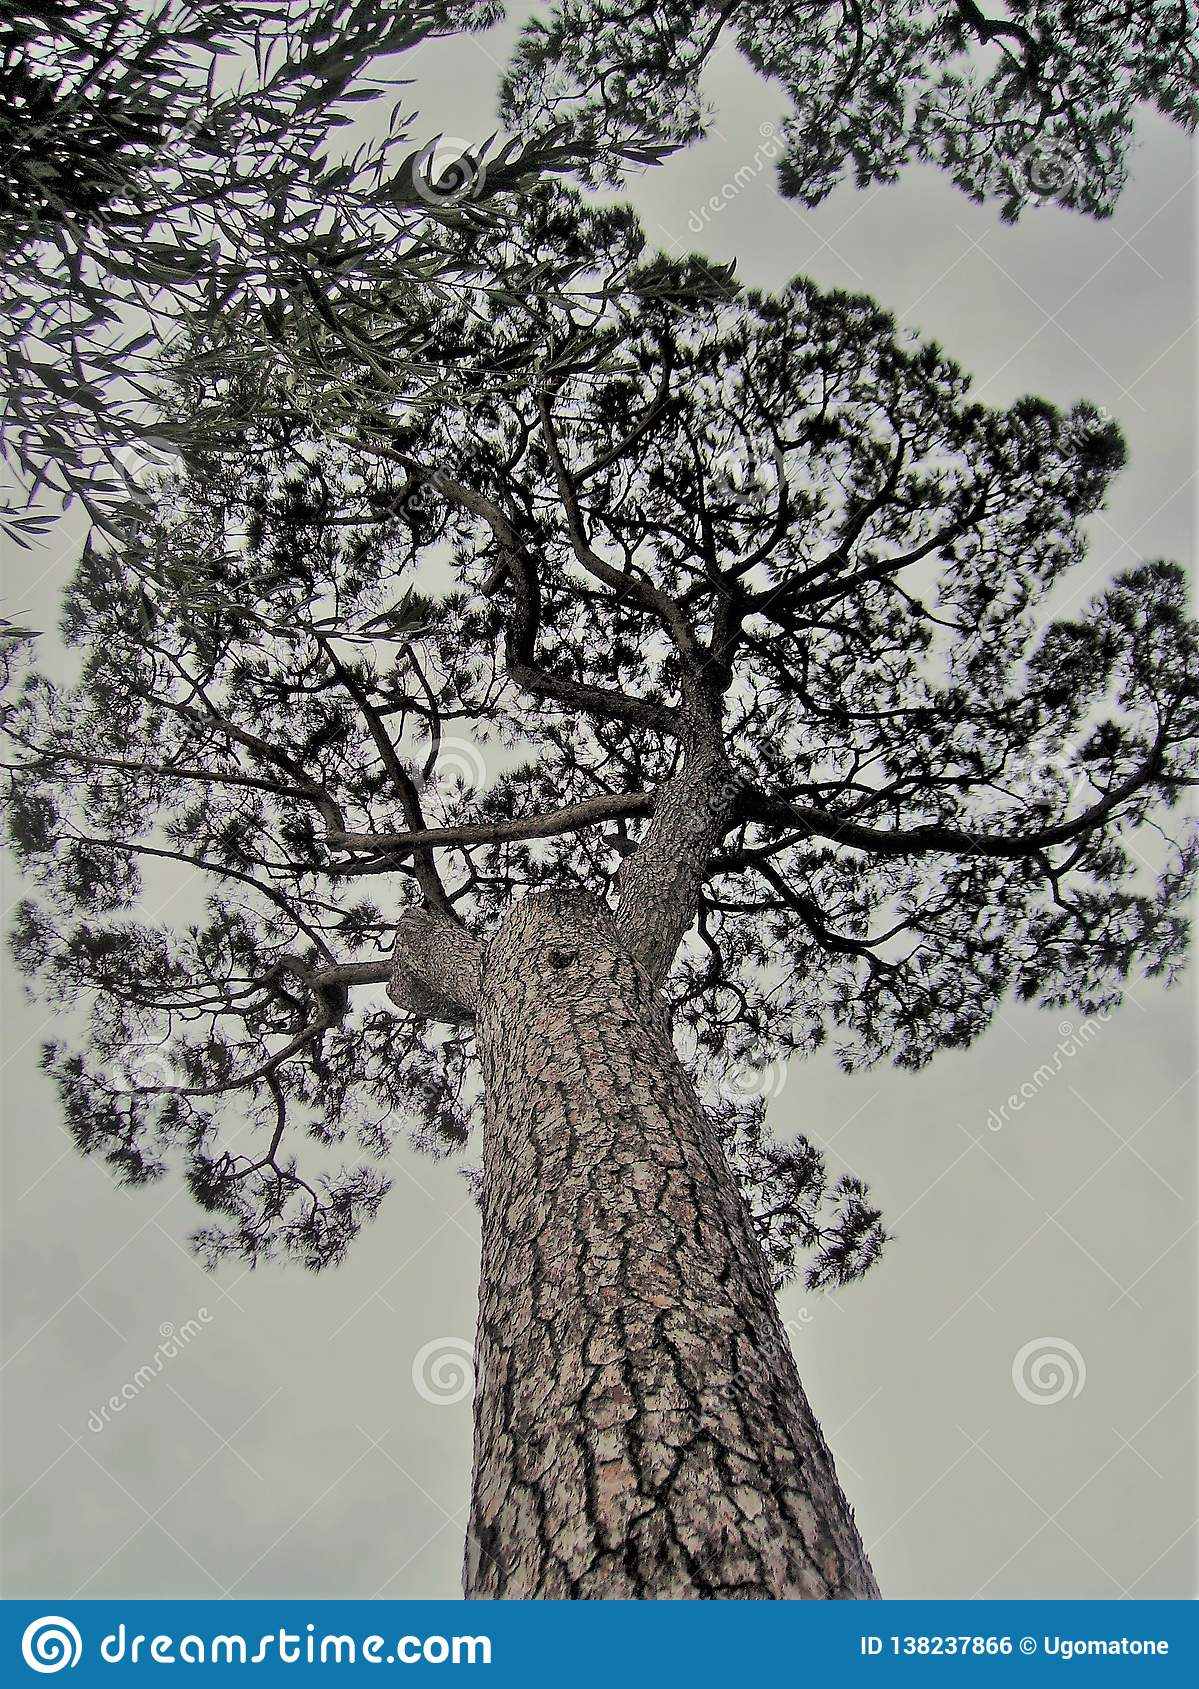 Maritime pine in Italy